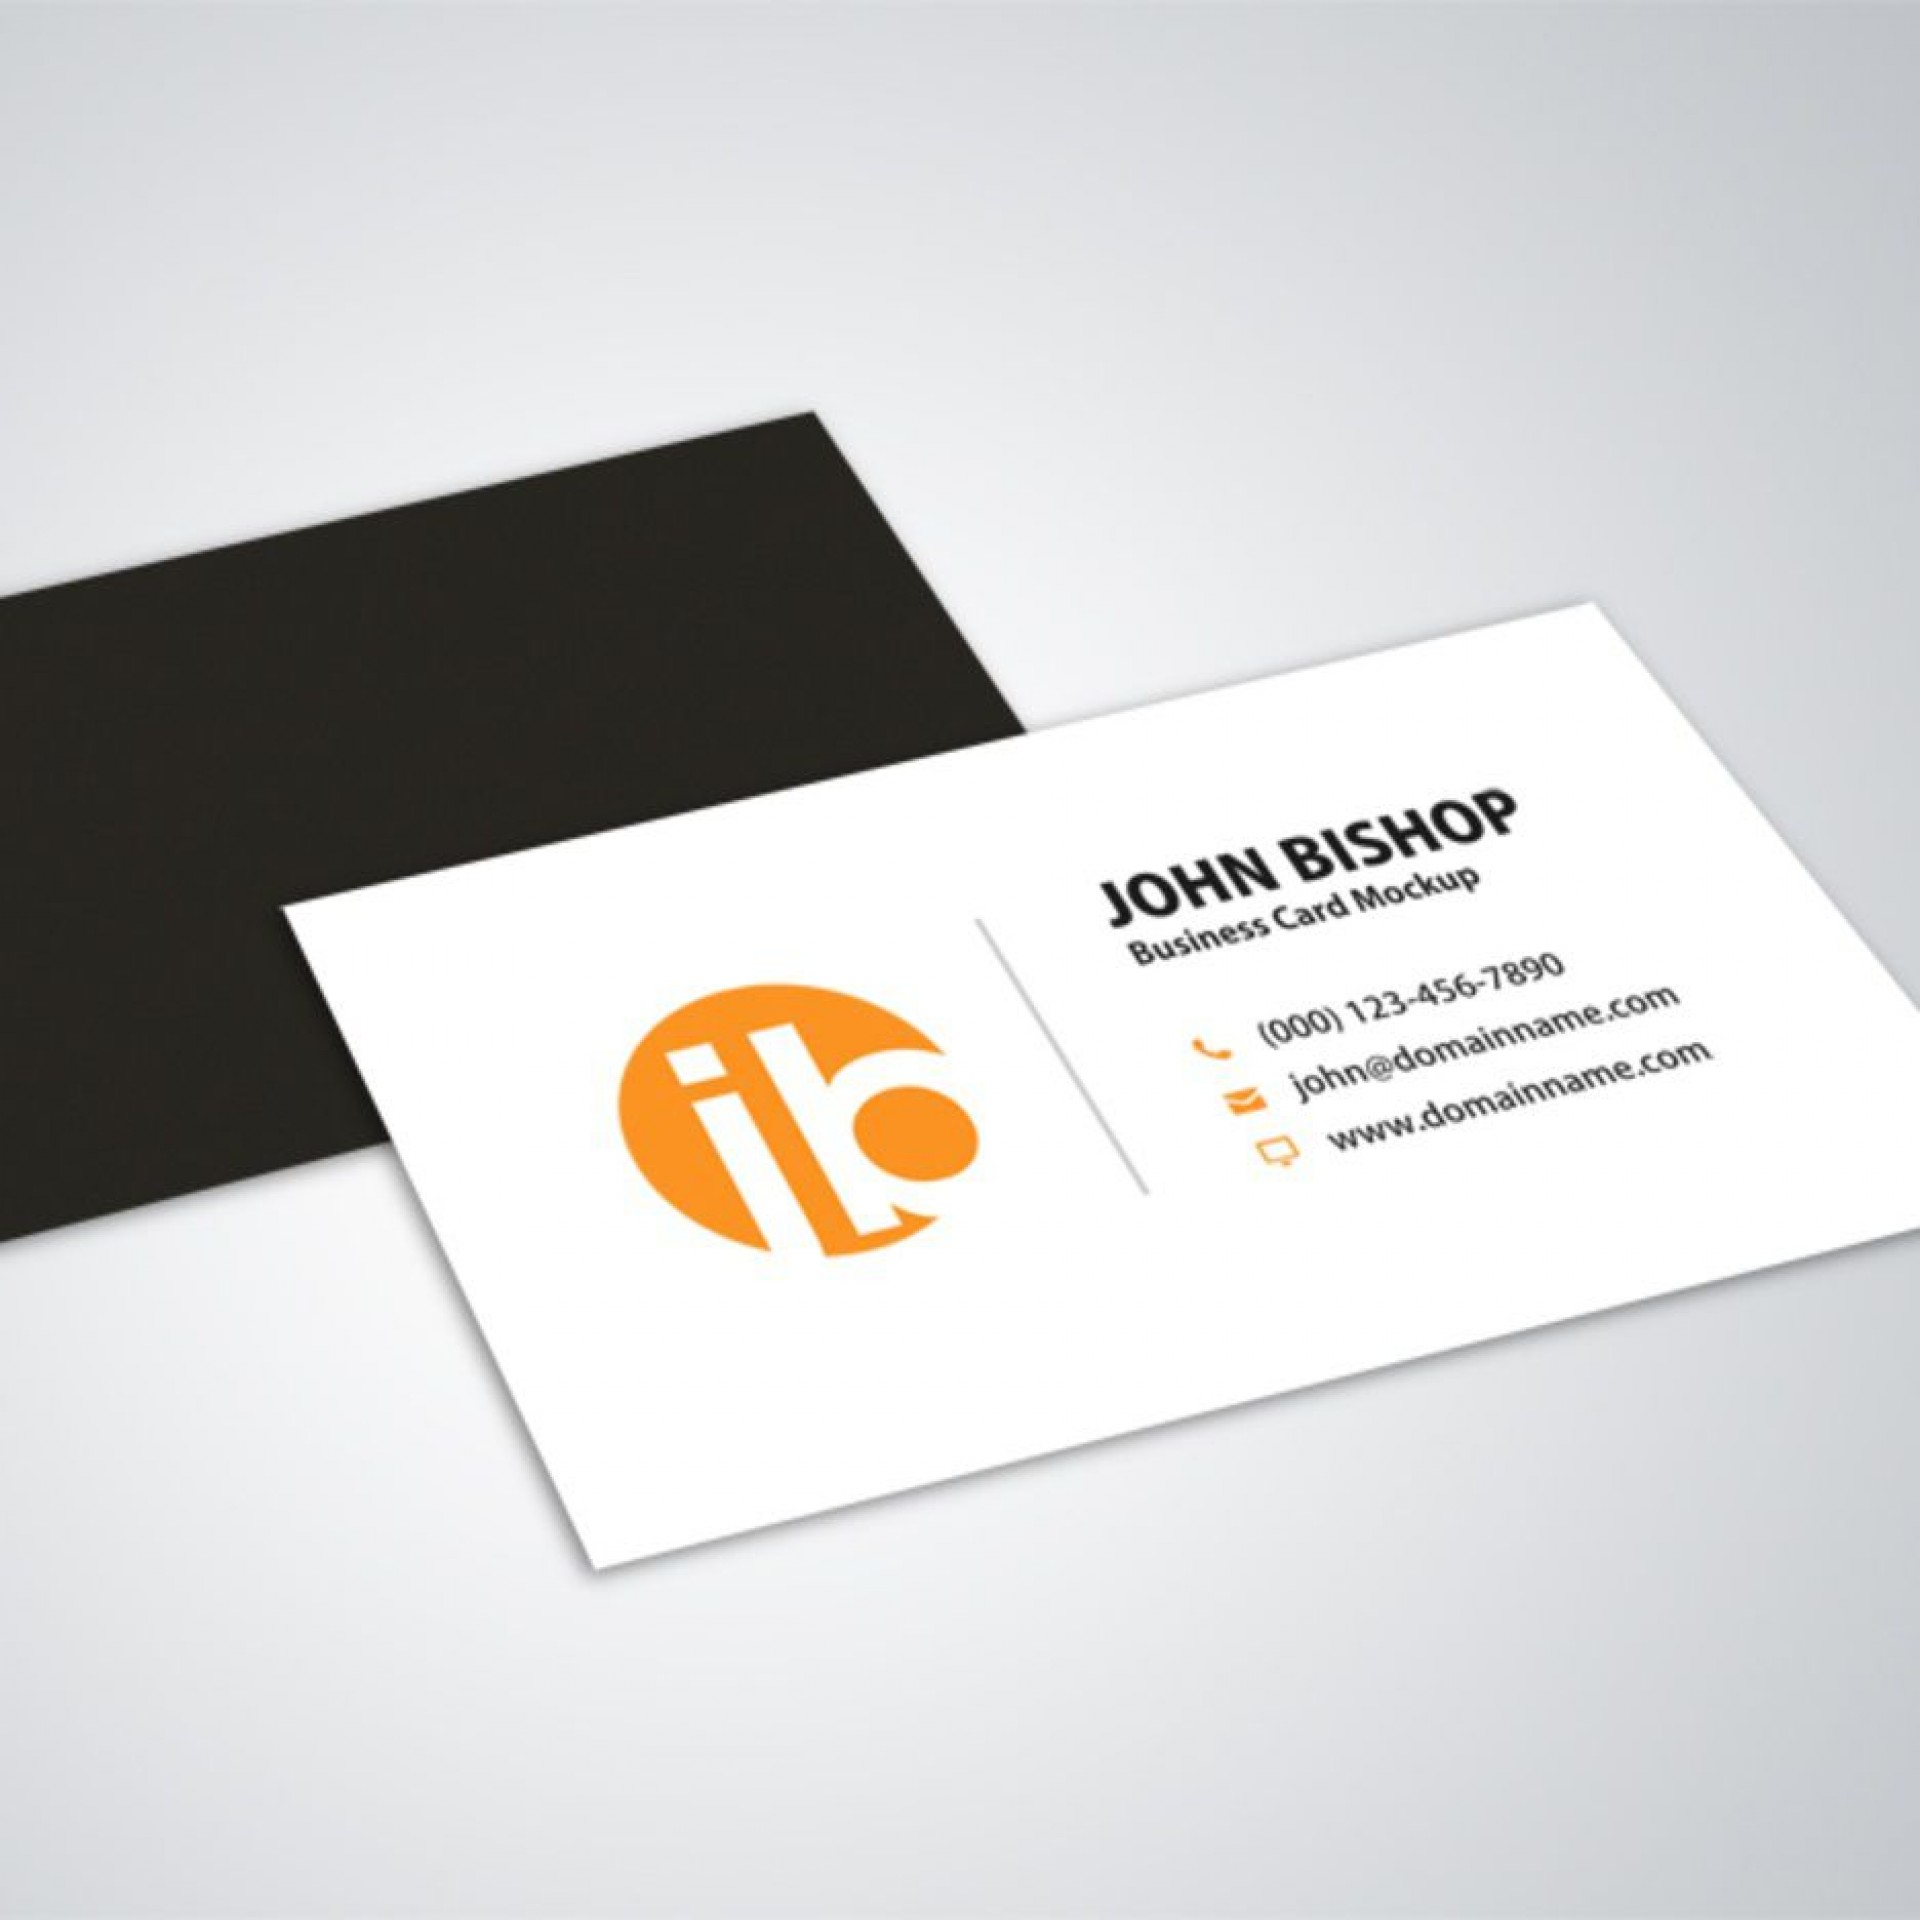 008 Surprising Simple Visiting Card Template Highest Clarity  Templates Busines Psd Design File Free Download1920